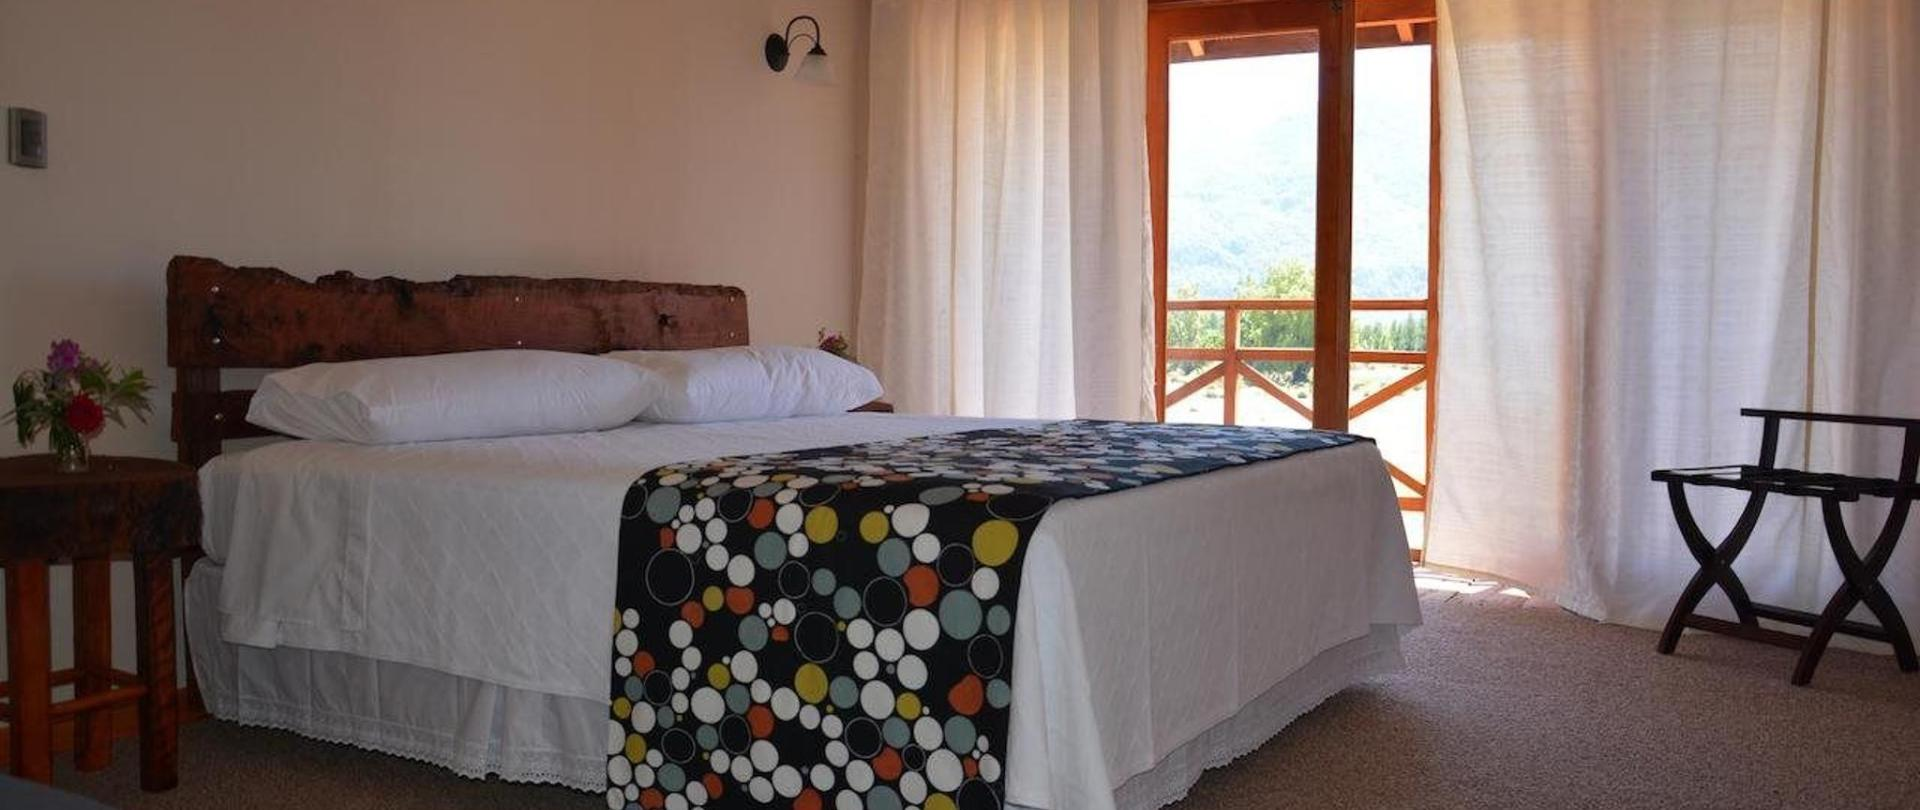 Deluxe Double Room with Bath1